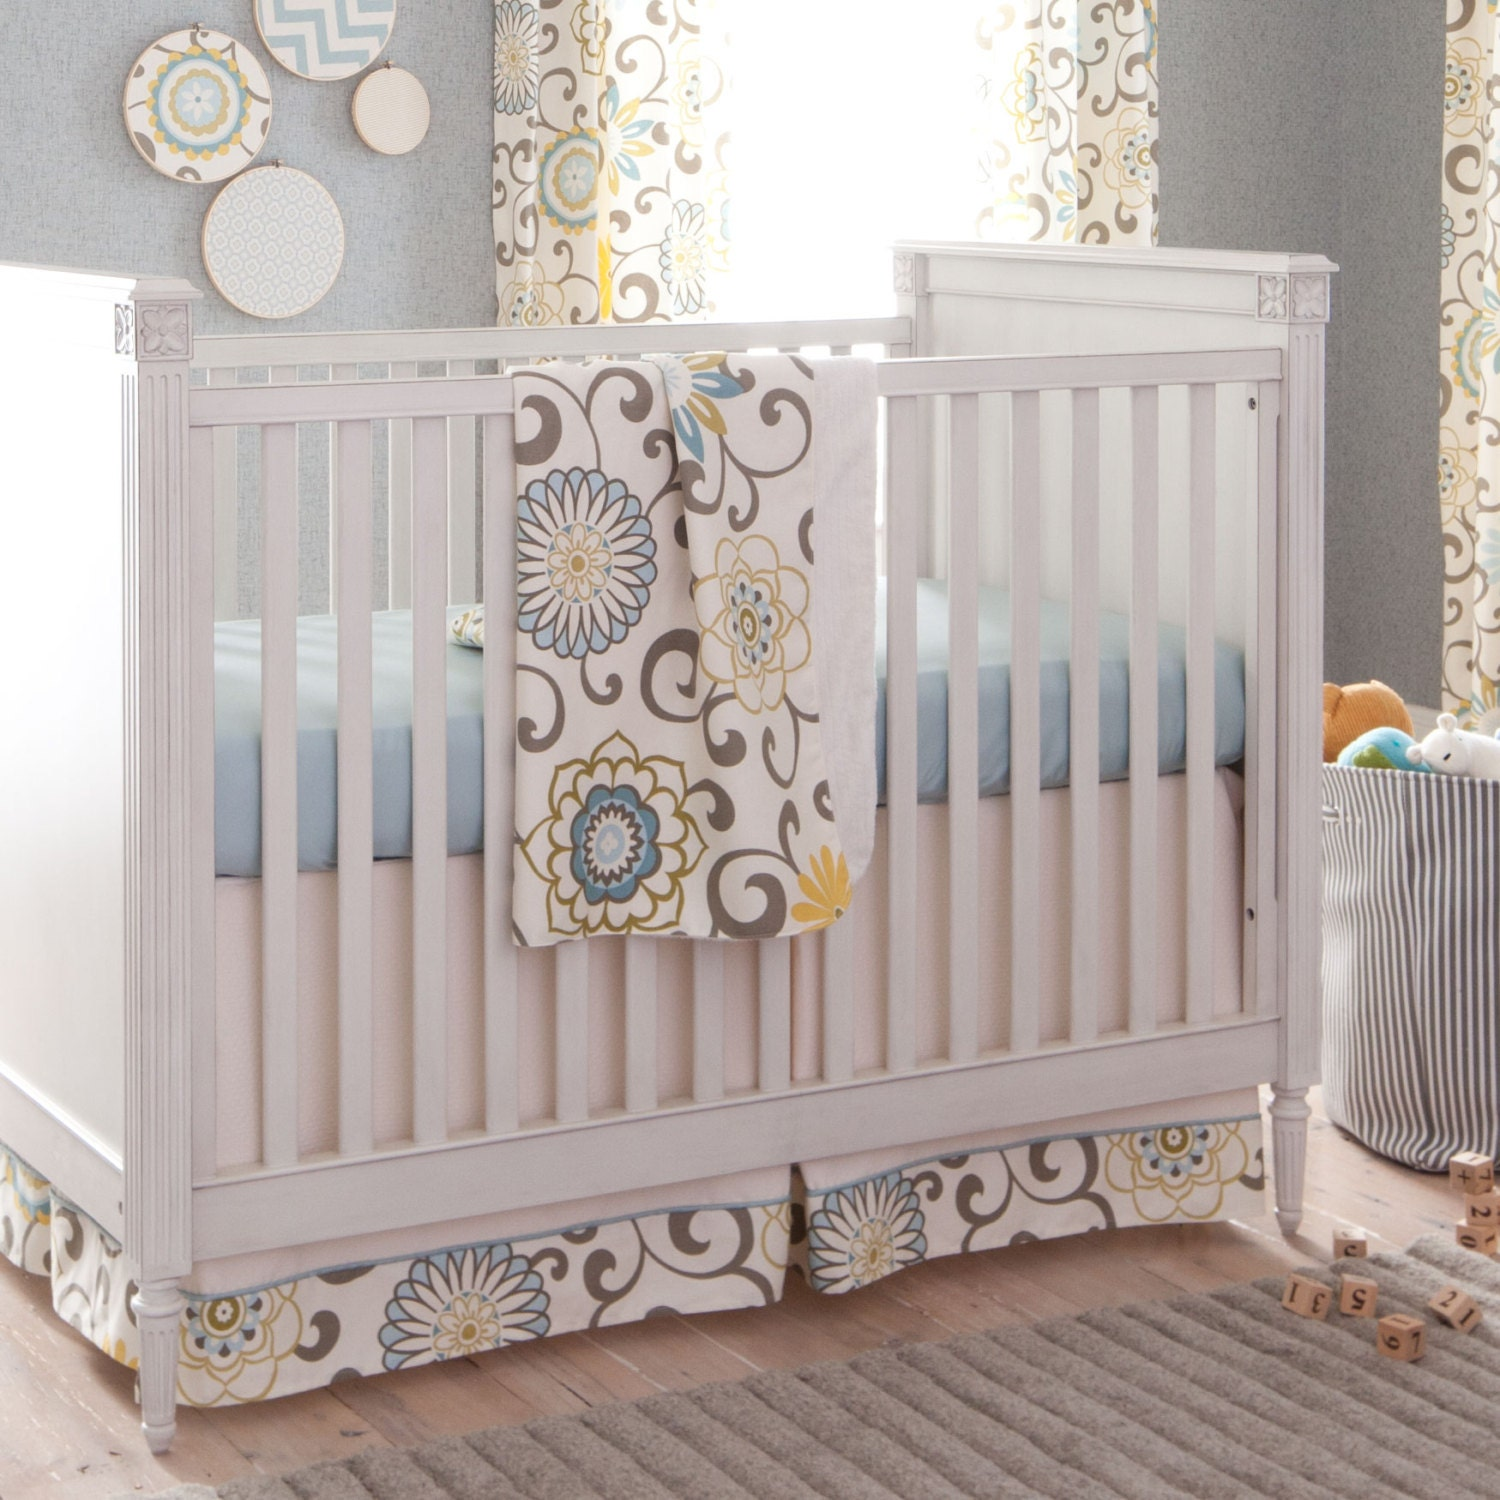 Gender Neutral Baby Crib Bedding Girl Crib Bedding Boy